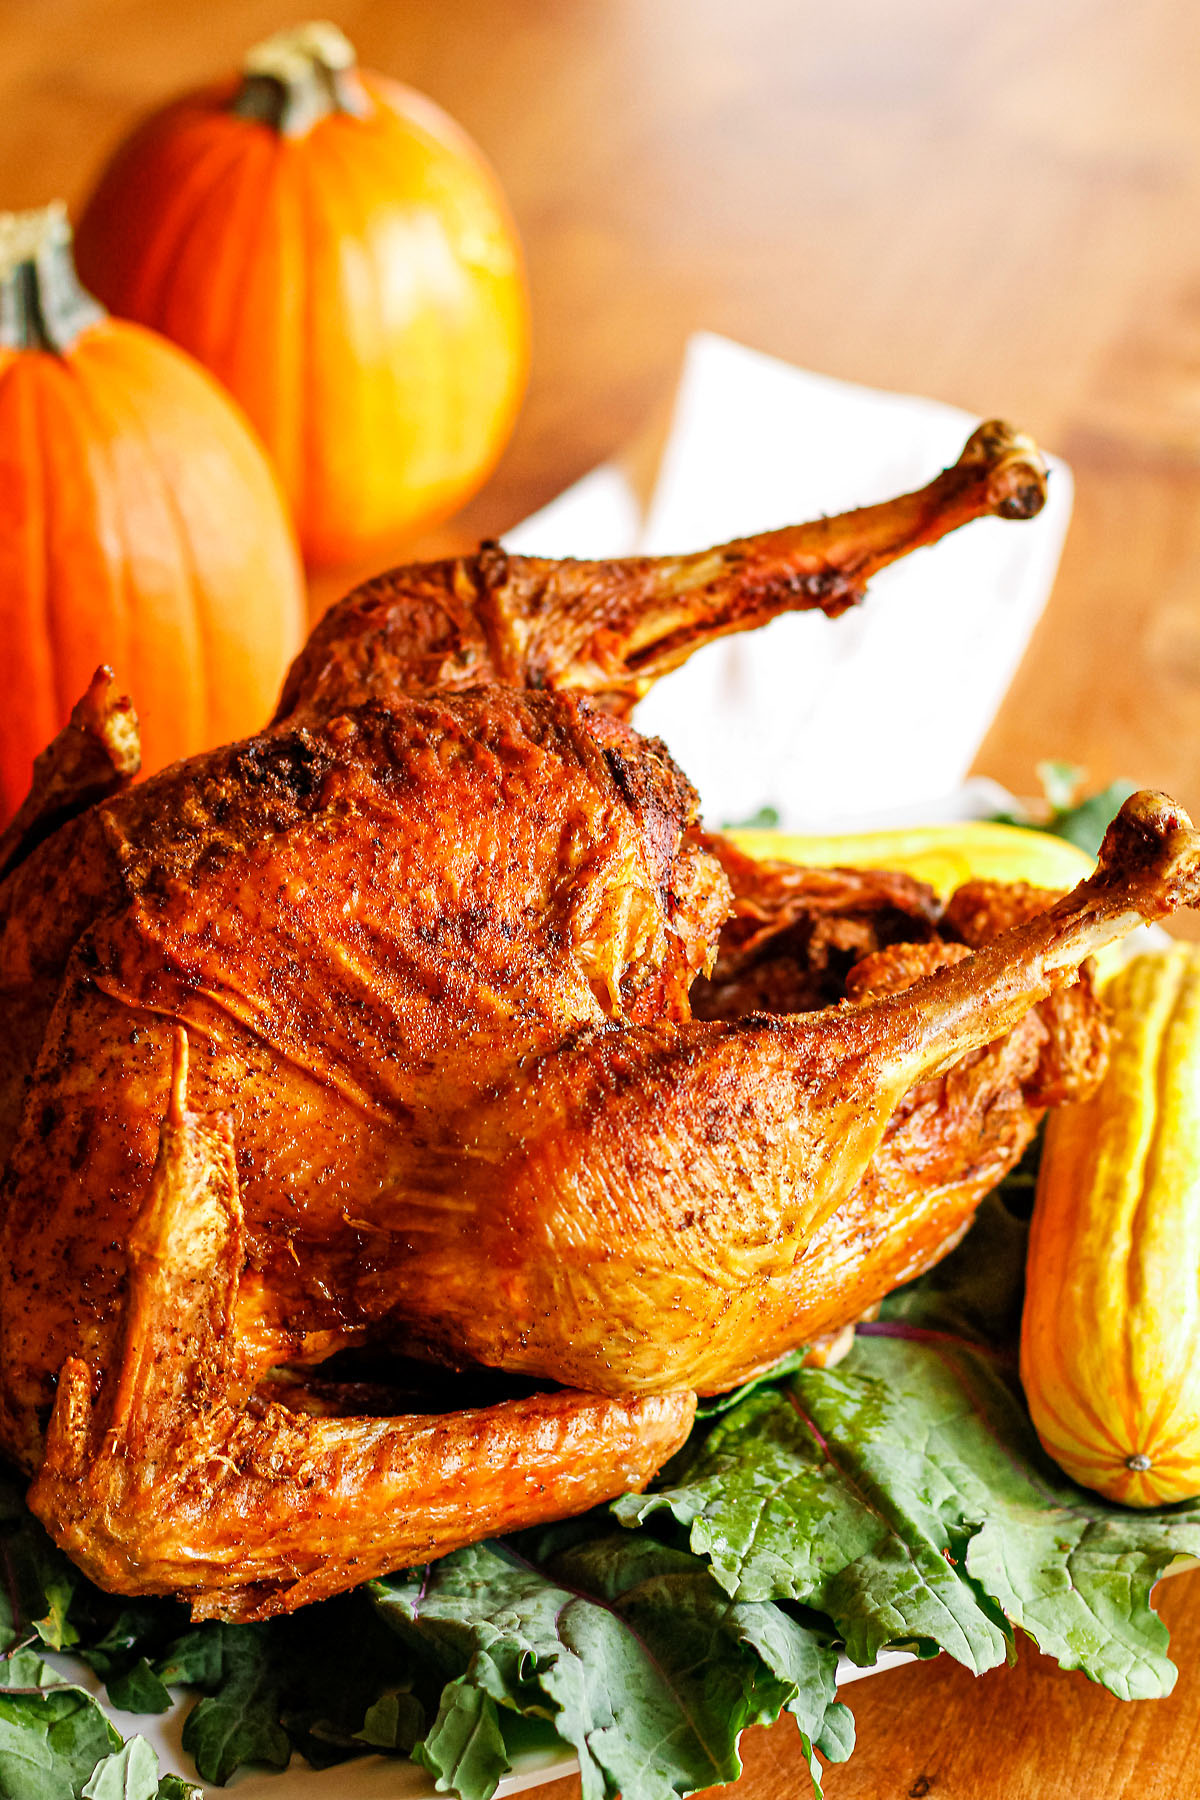 fried turkey recipe made with fried turkey rub + peanut oil